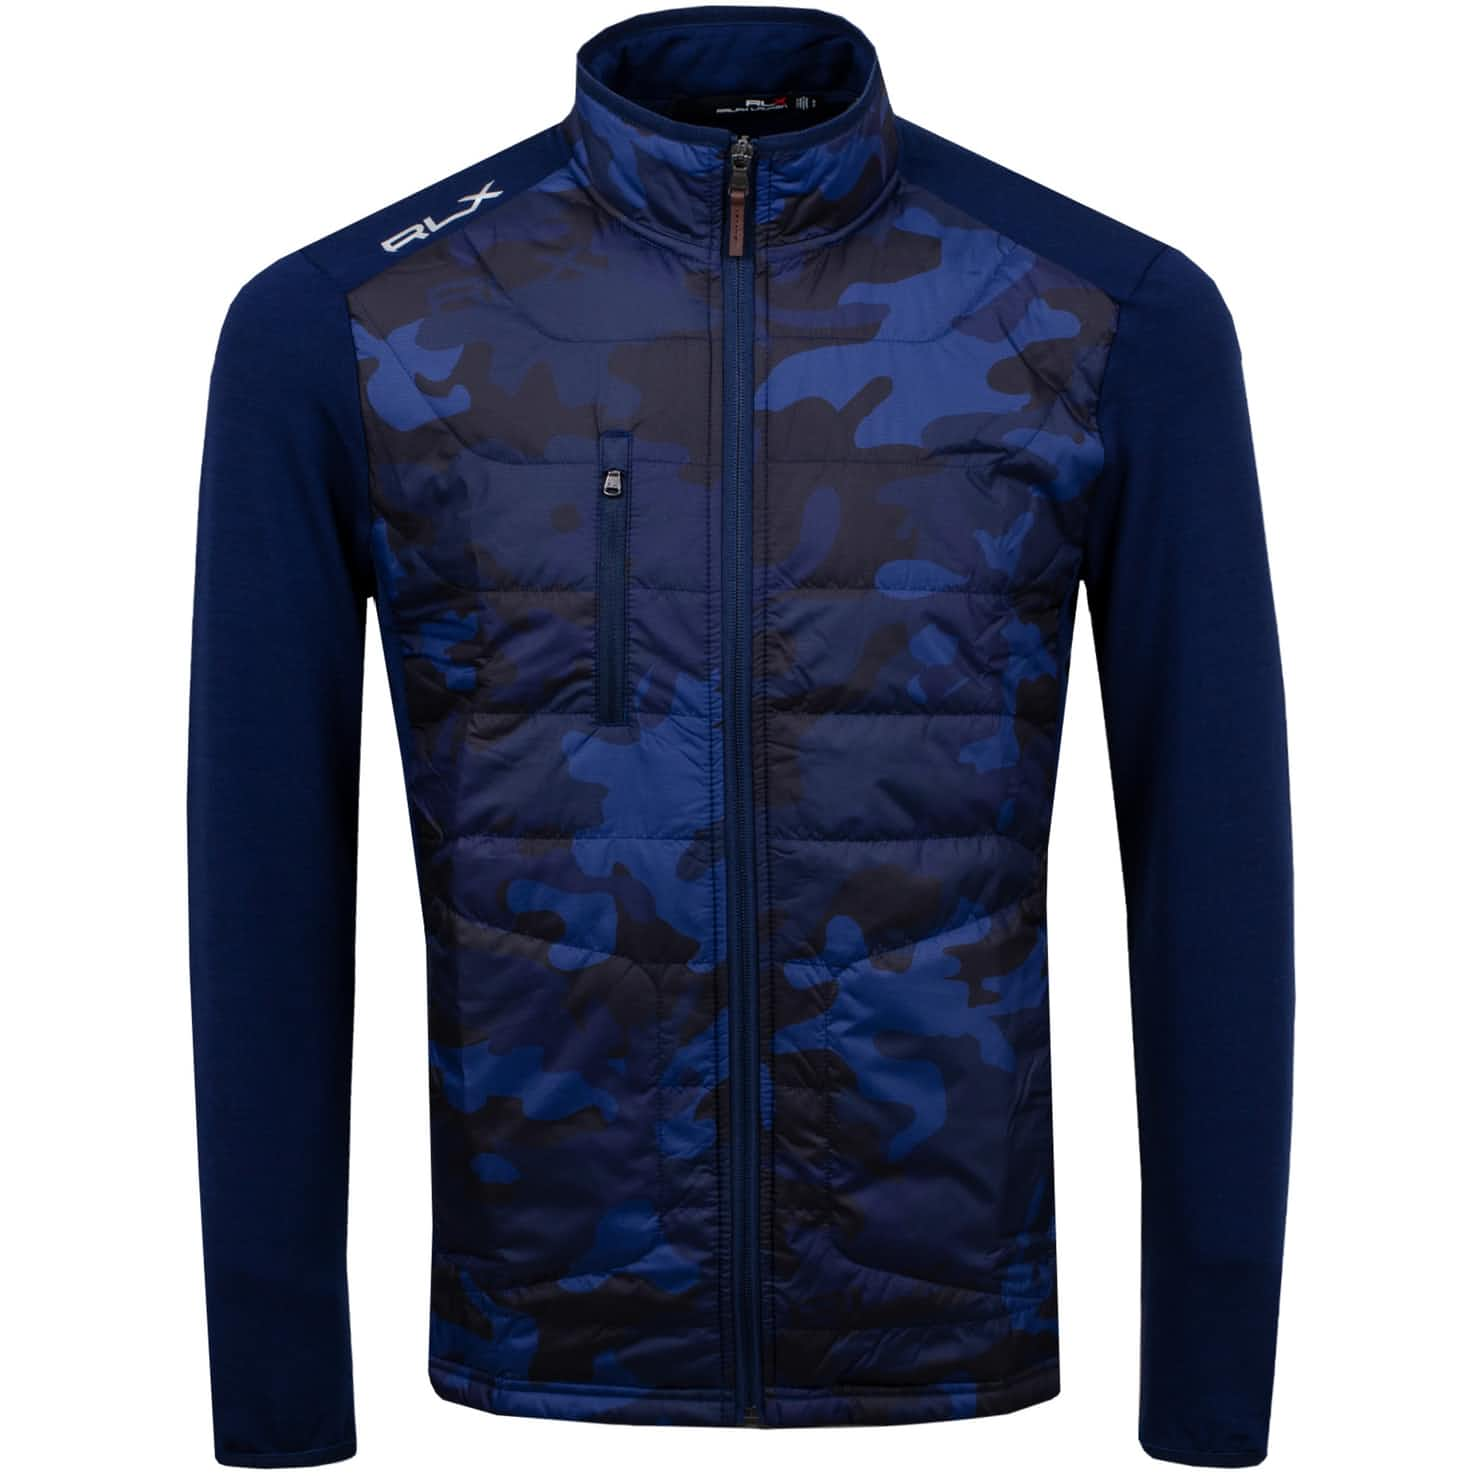 Cool Wool Jacket French Navy Camo - SS20